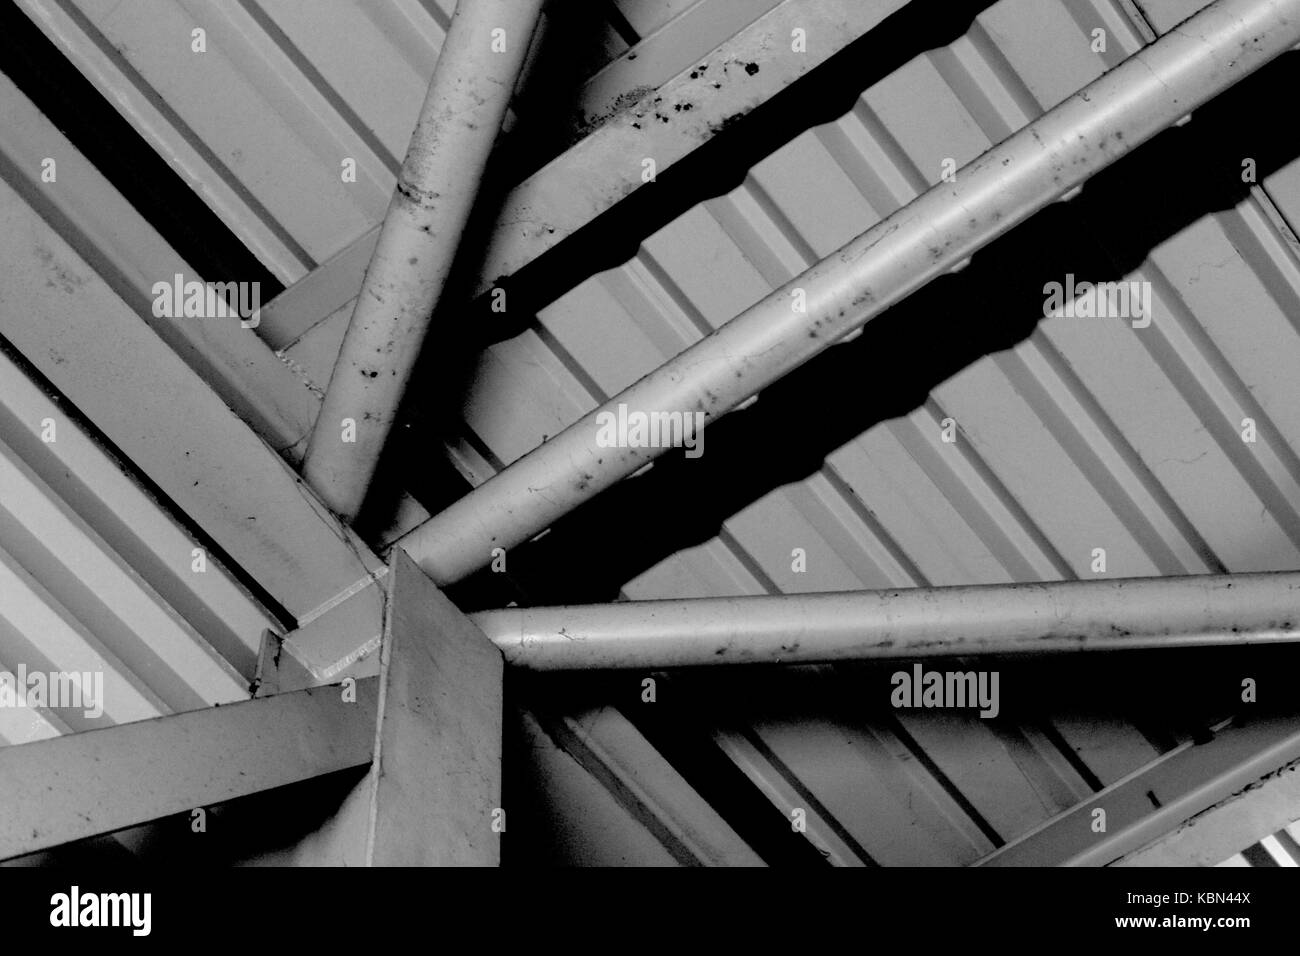 Formalist photography simple black and white photograph of metal industrial architecture with a sunburst of metal girders converging bottom left